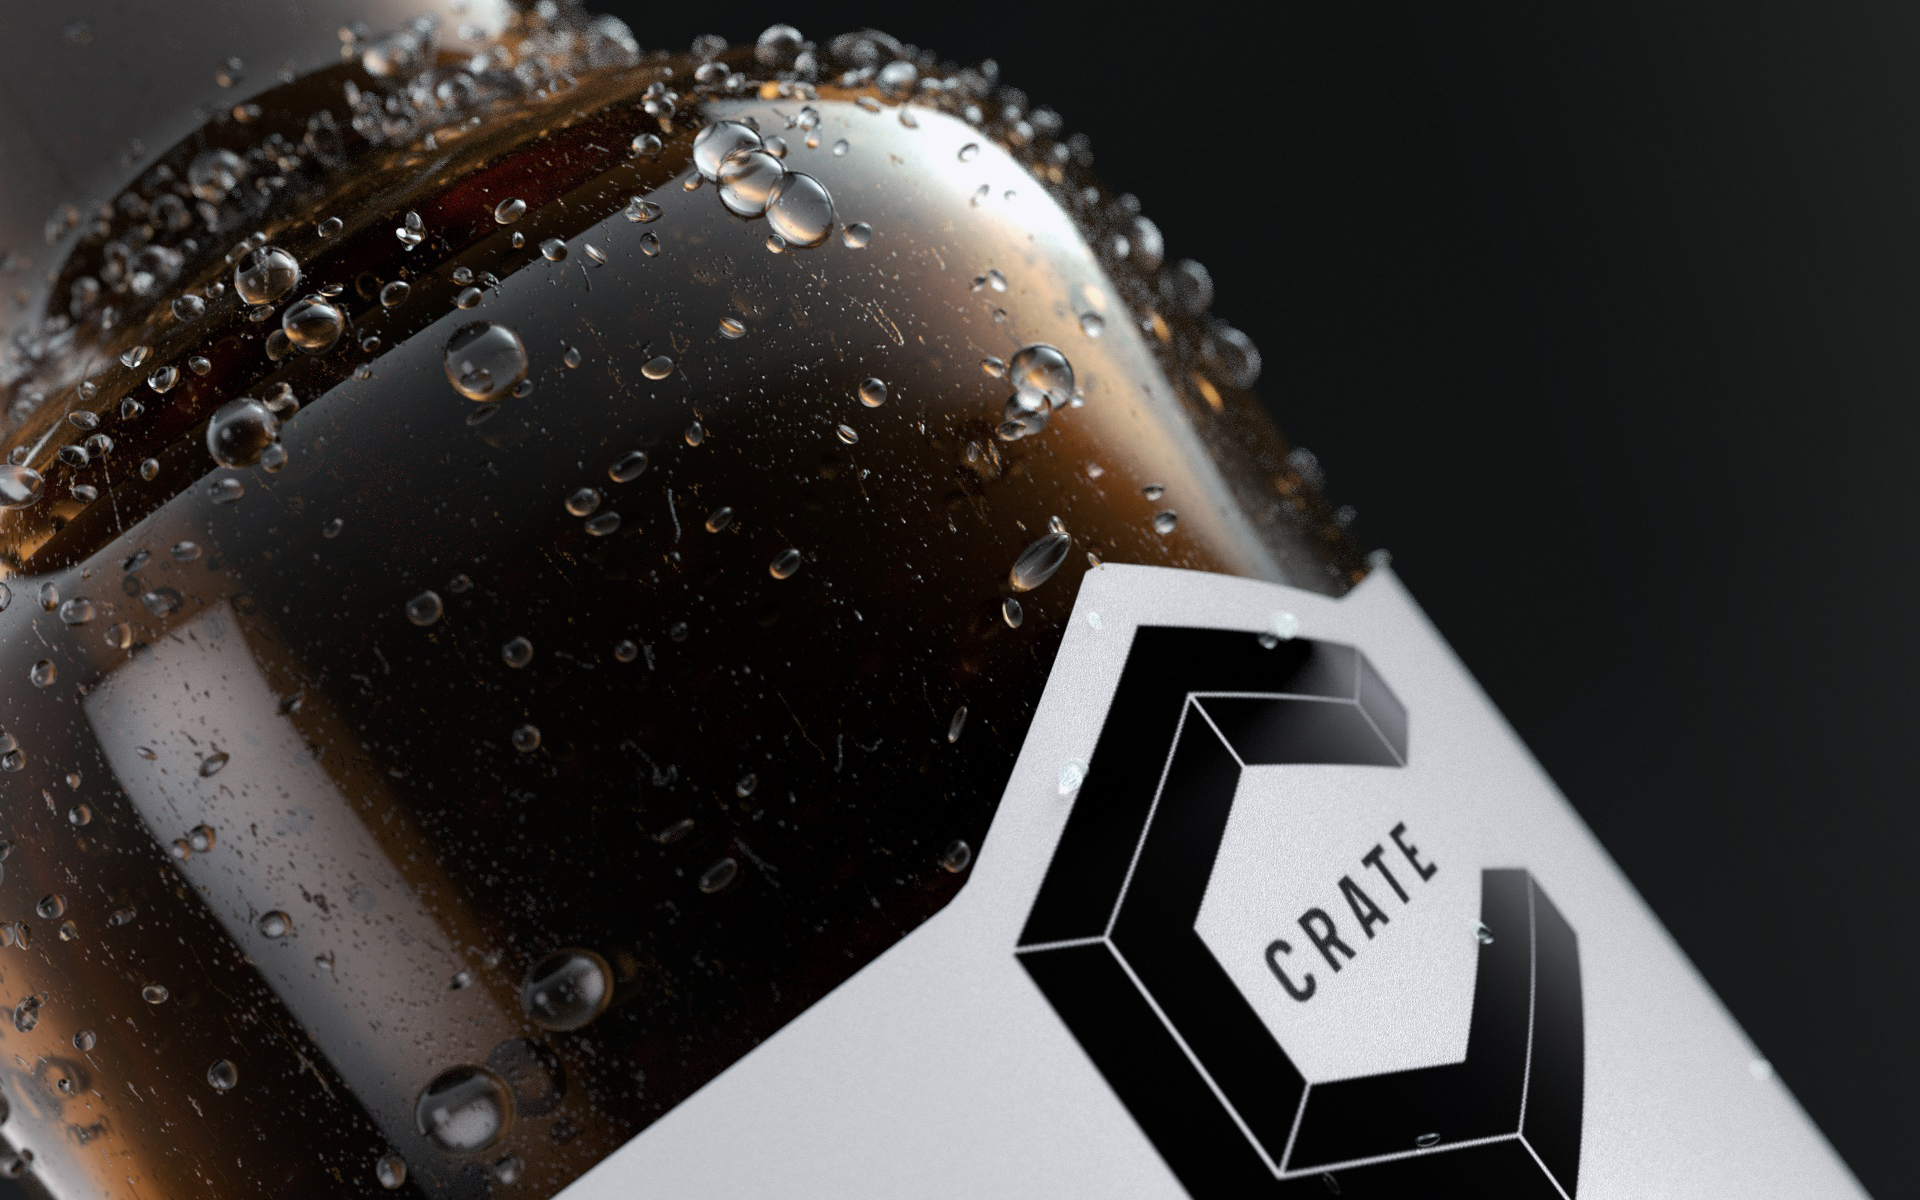 craft-beer-bottle-3d-render-closeup-02